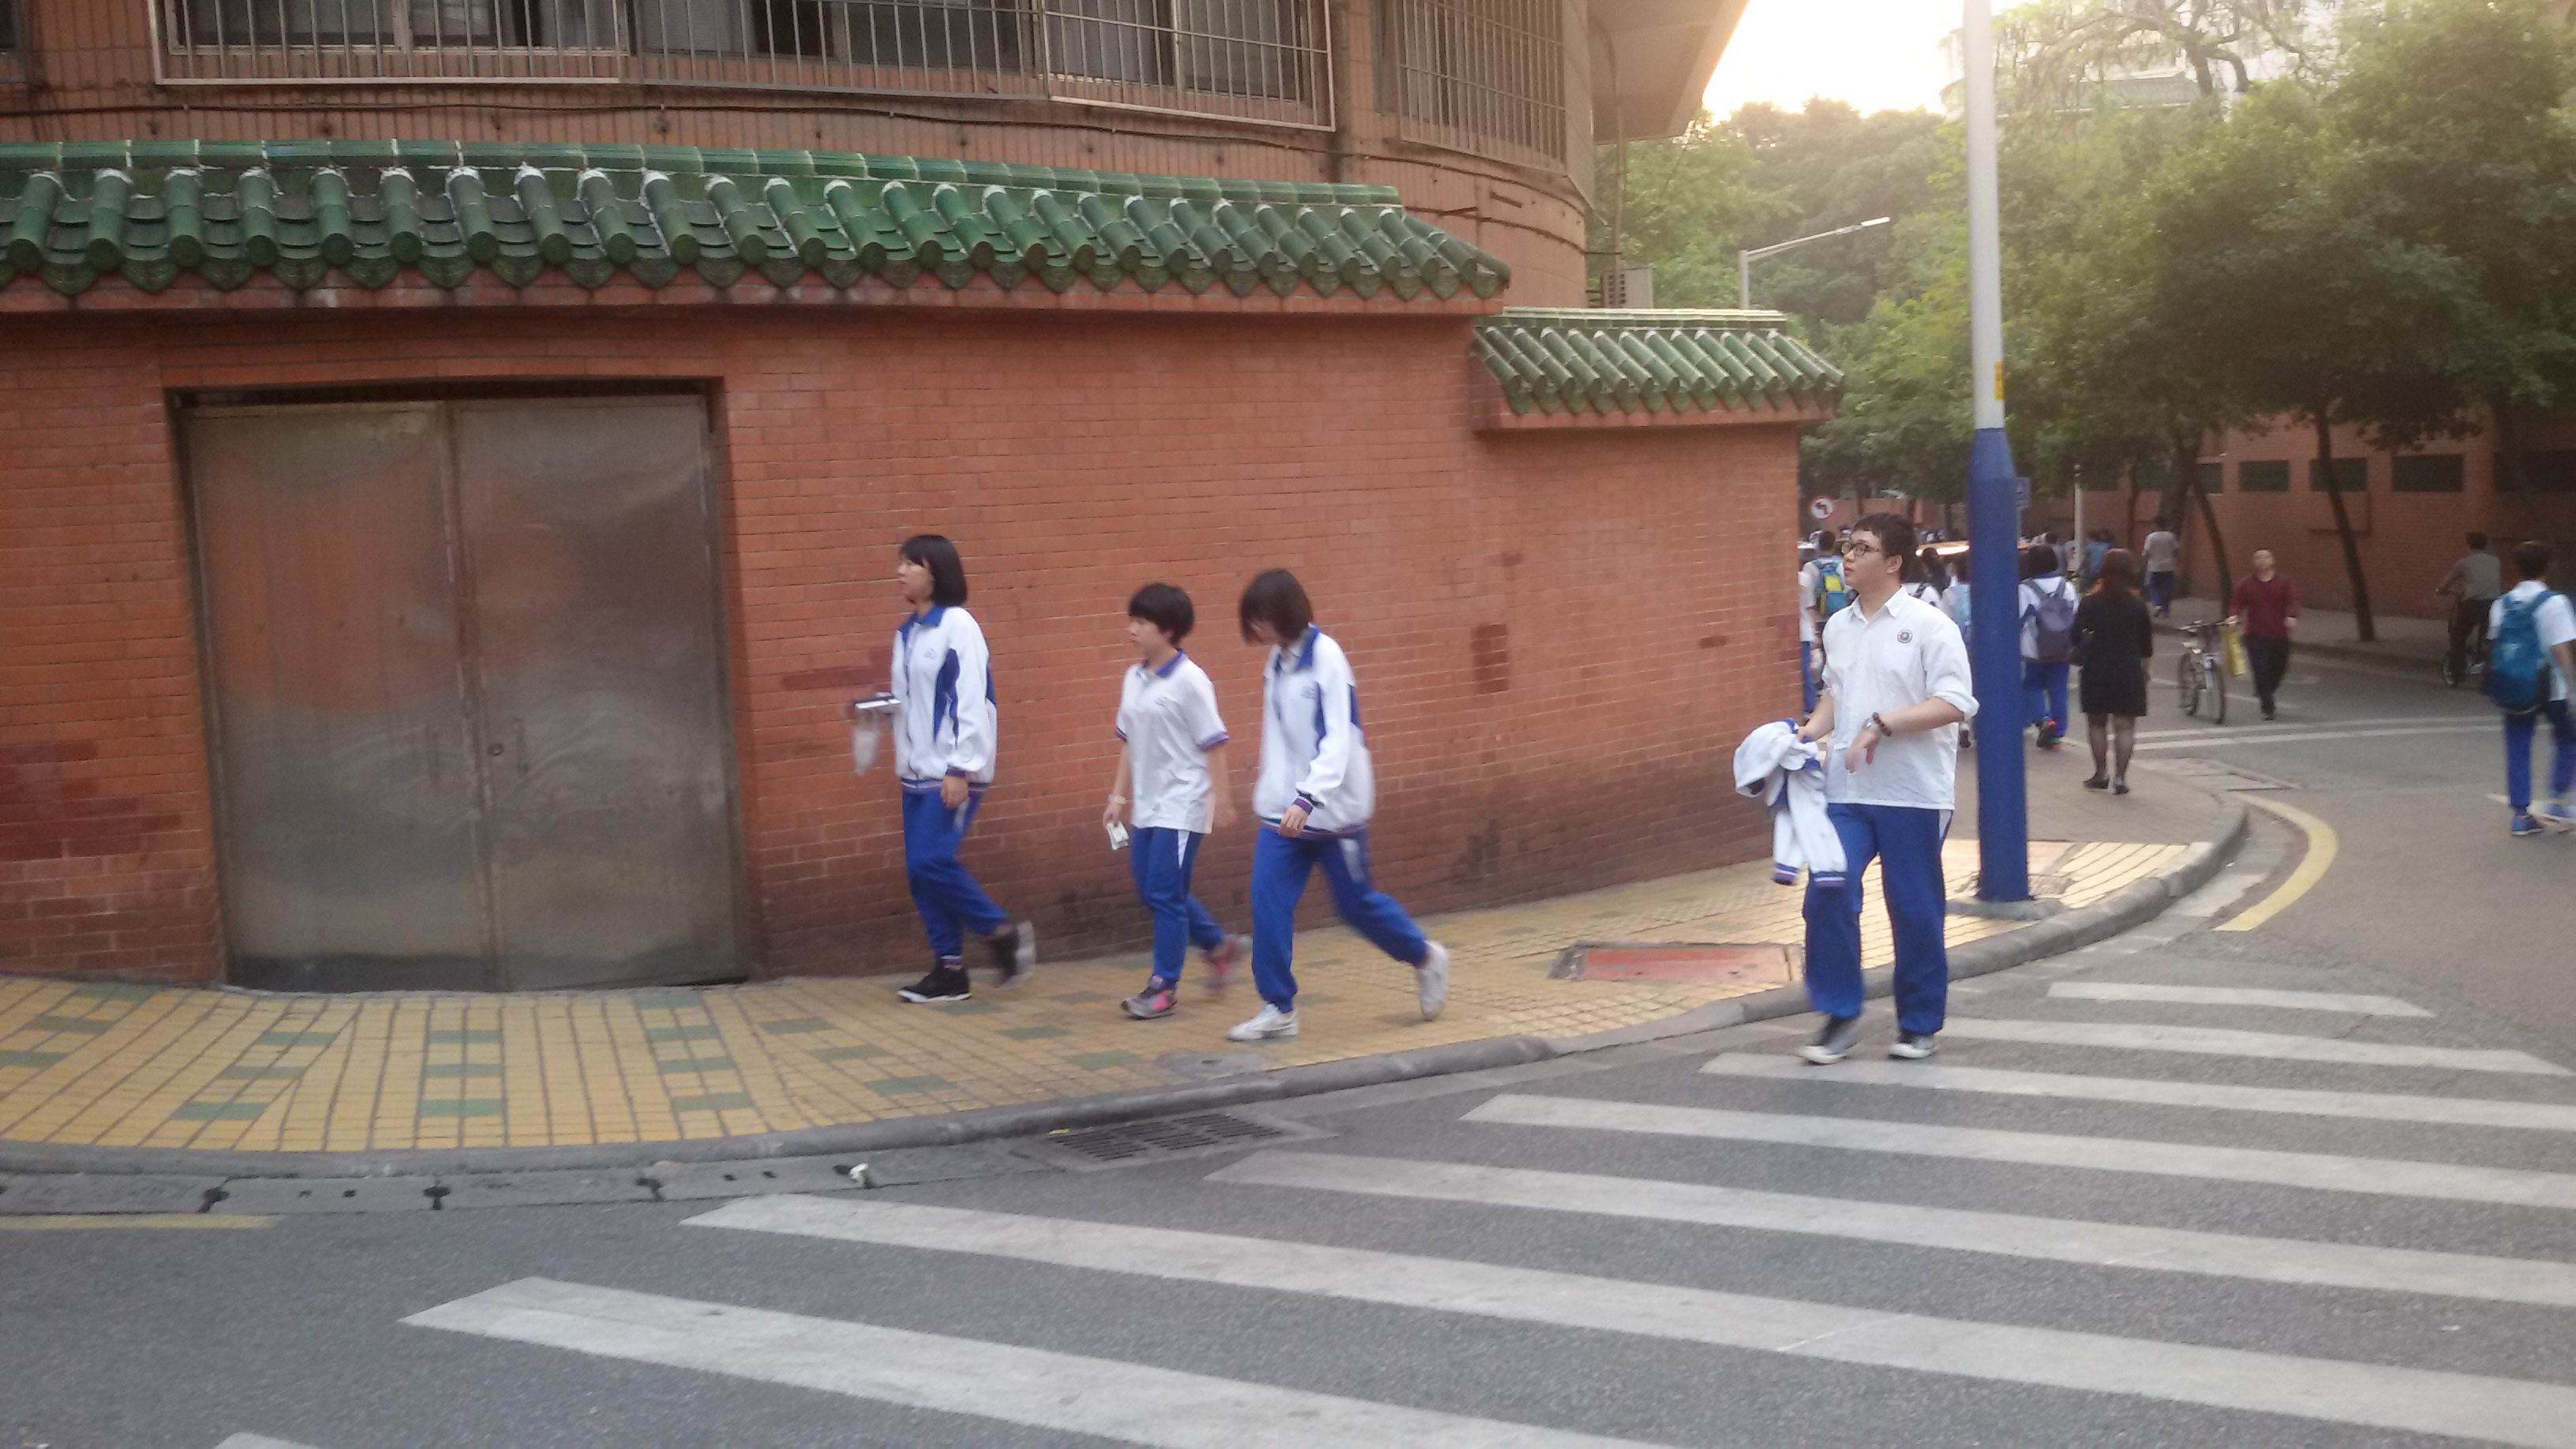 School Uniform FOR PCMS in Canton.jpg 粵語: 廣州市培正中學嘅校服 Date 16 April 2015, 18:18:47 Source Own work Author CRCHF